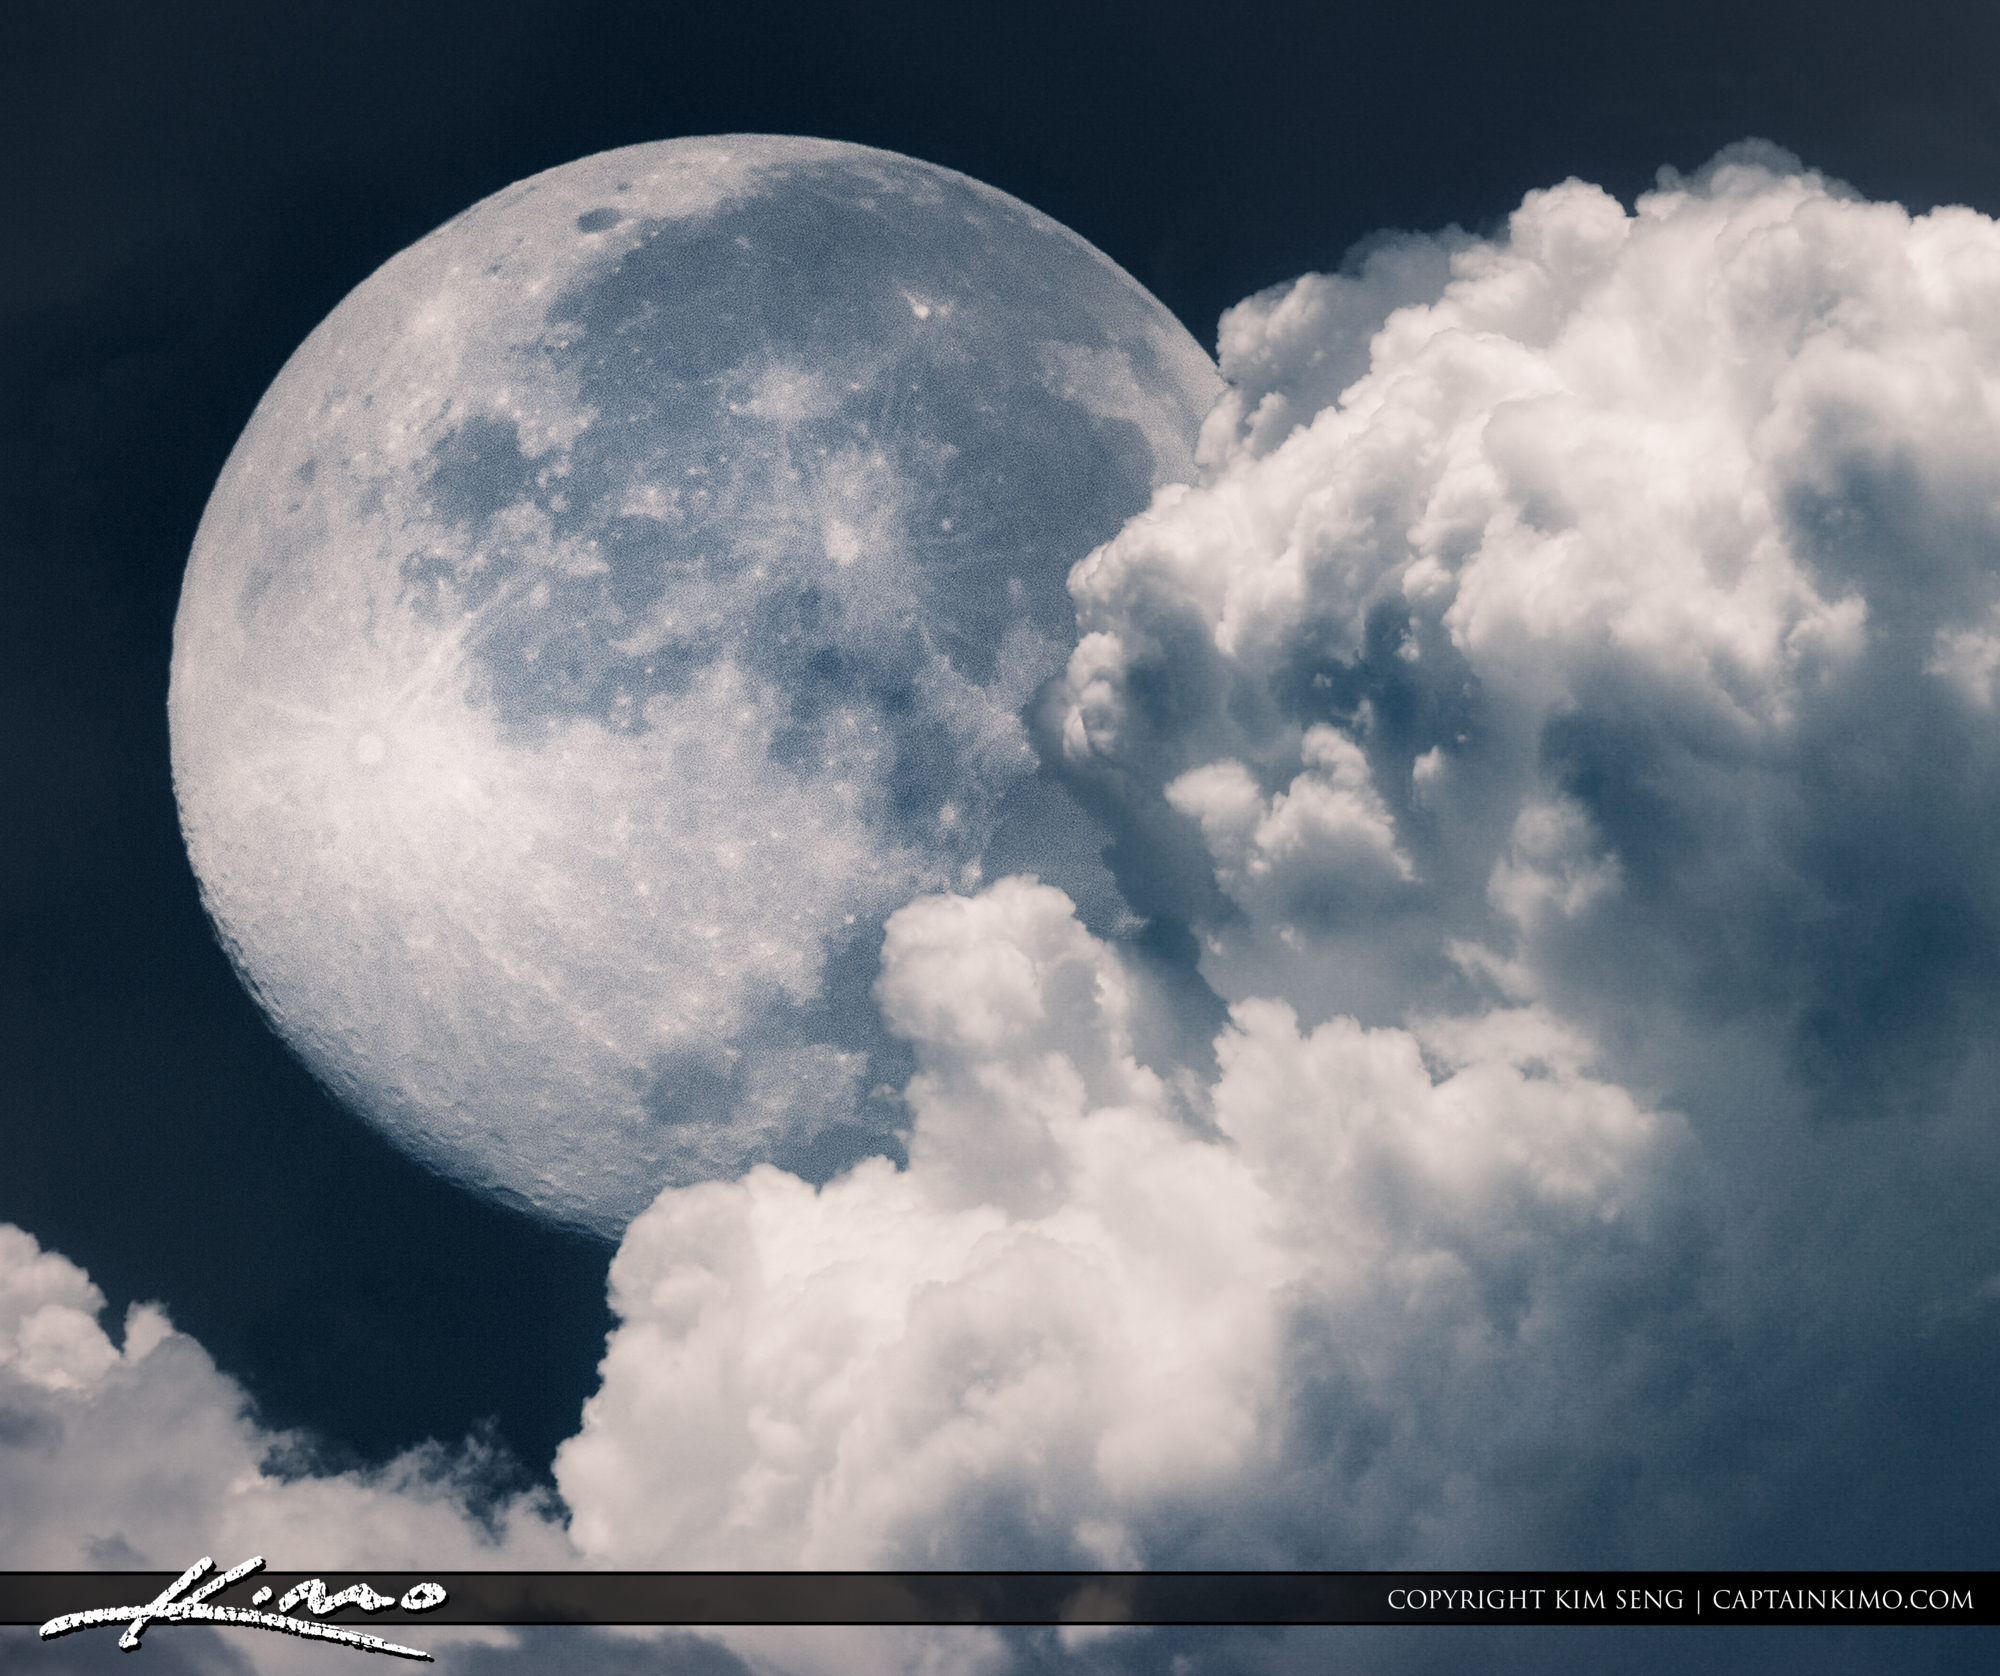 Moon Setting Behind Clouds by Captain Kimo